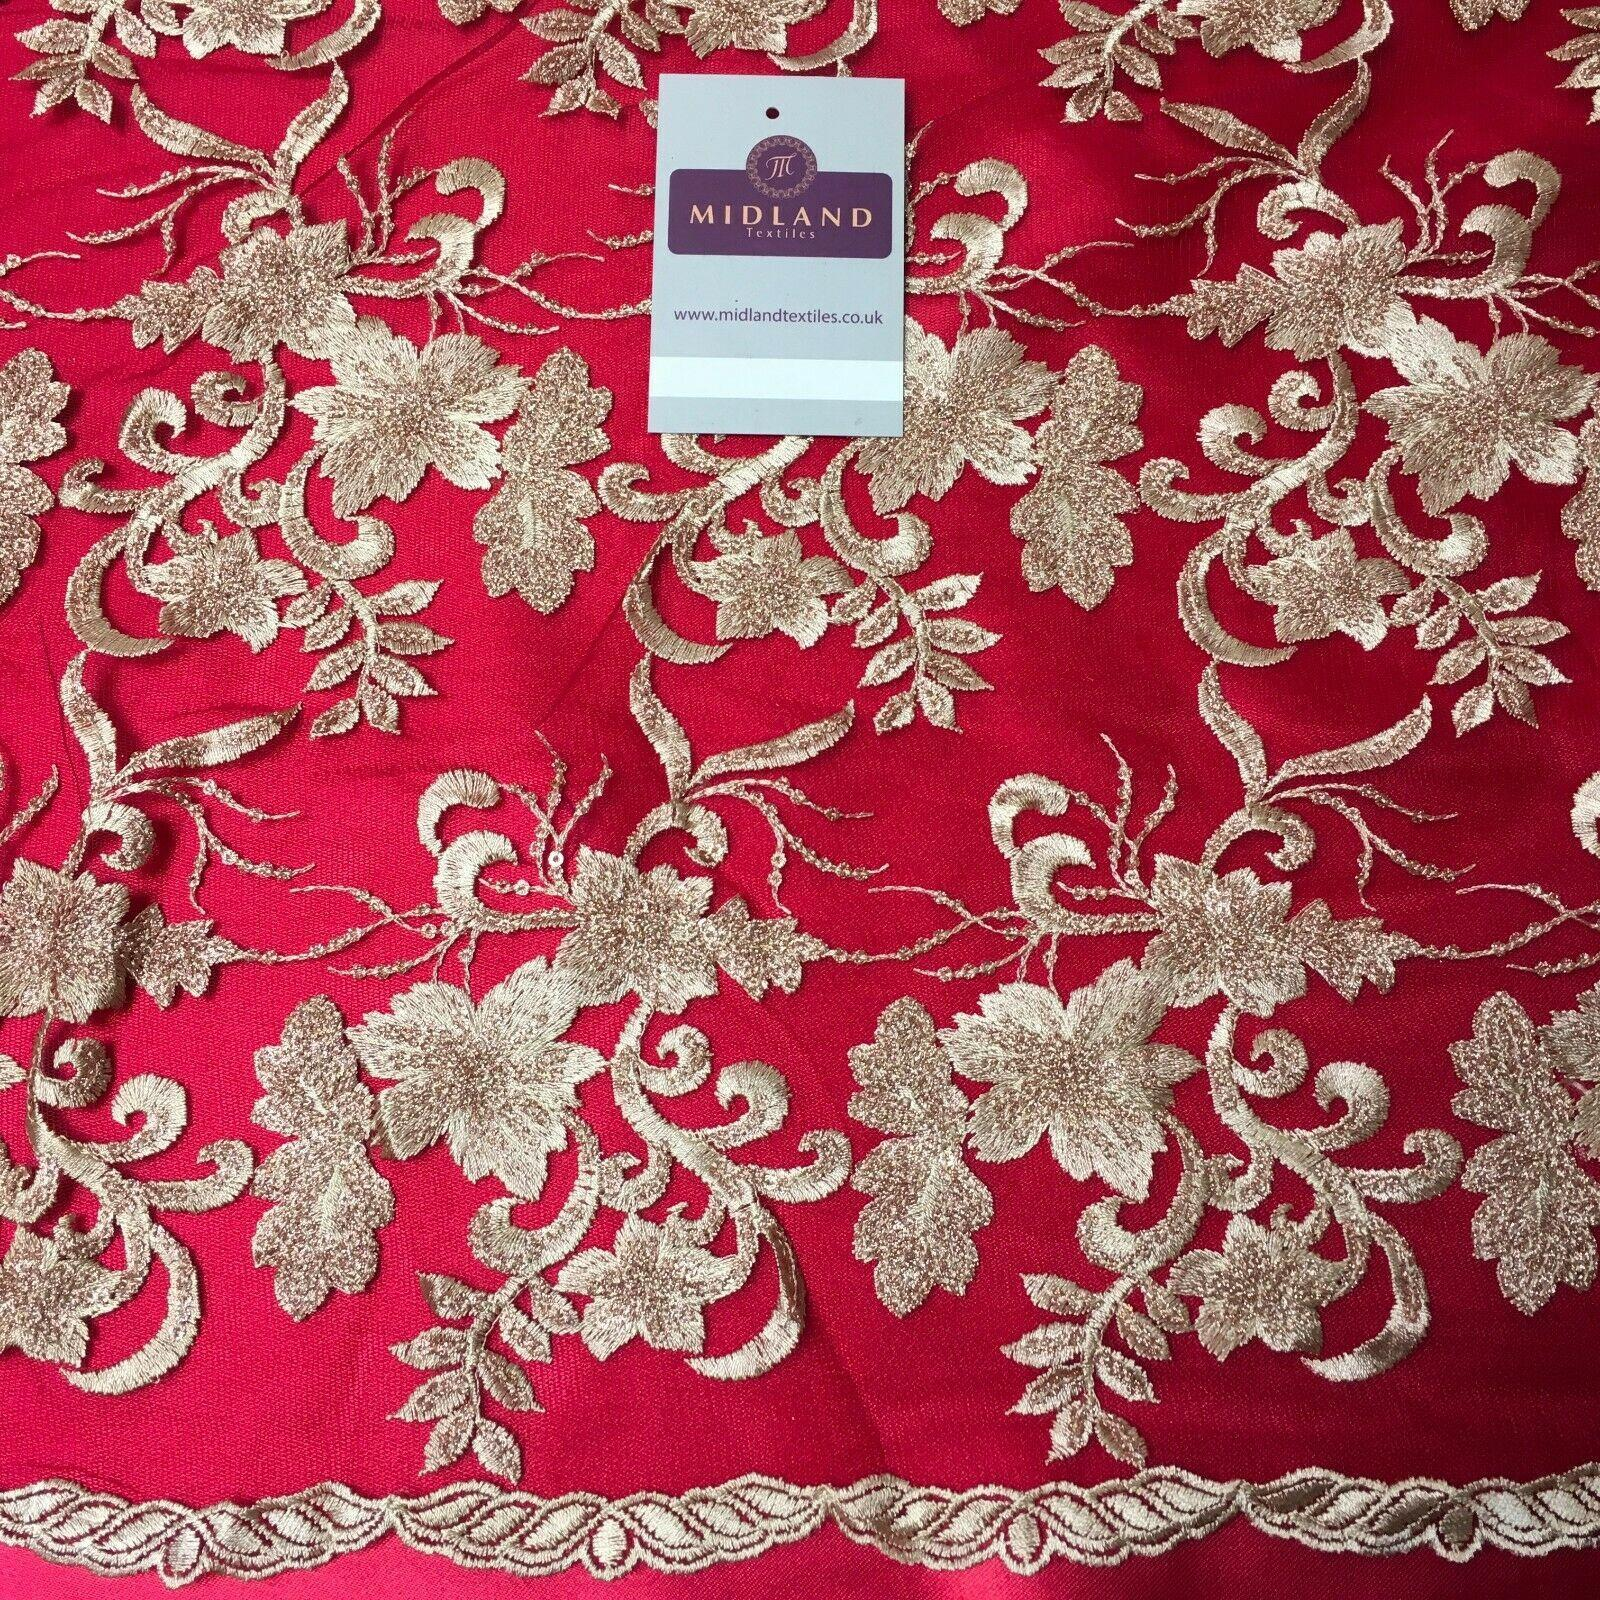 Georgette Fabric with Sequins and Embroidery in Dark Cerise 112cm